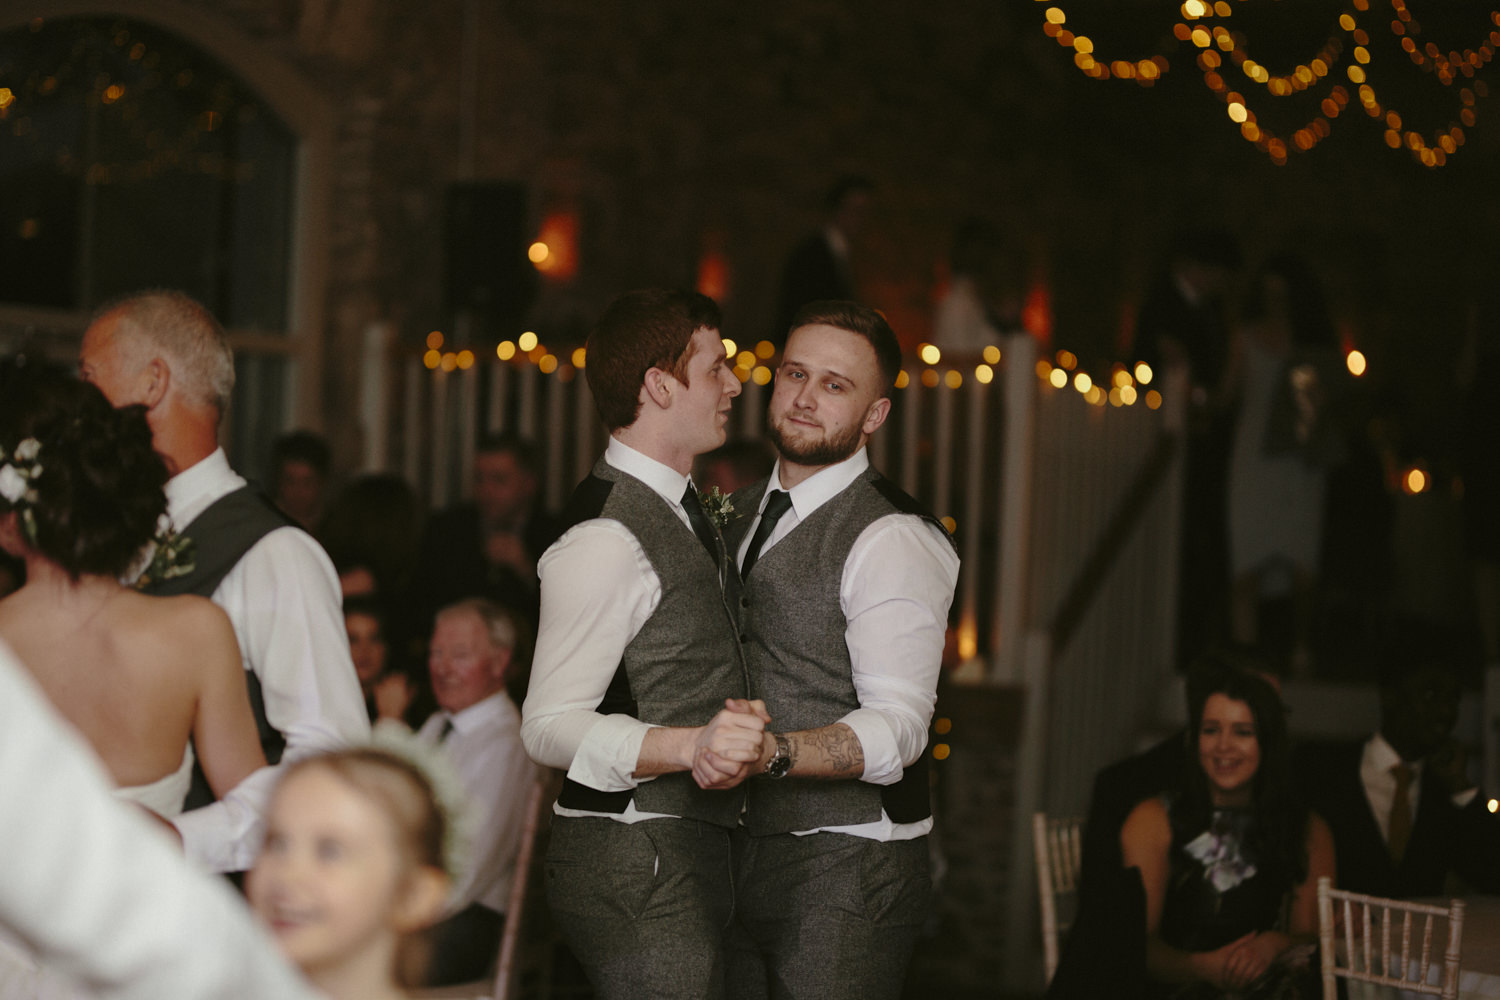 Askham-Hall-Wedding-Websize-514.jpg